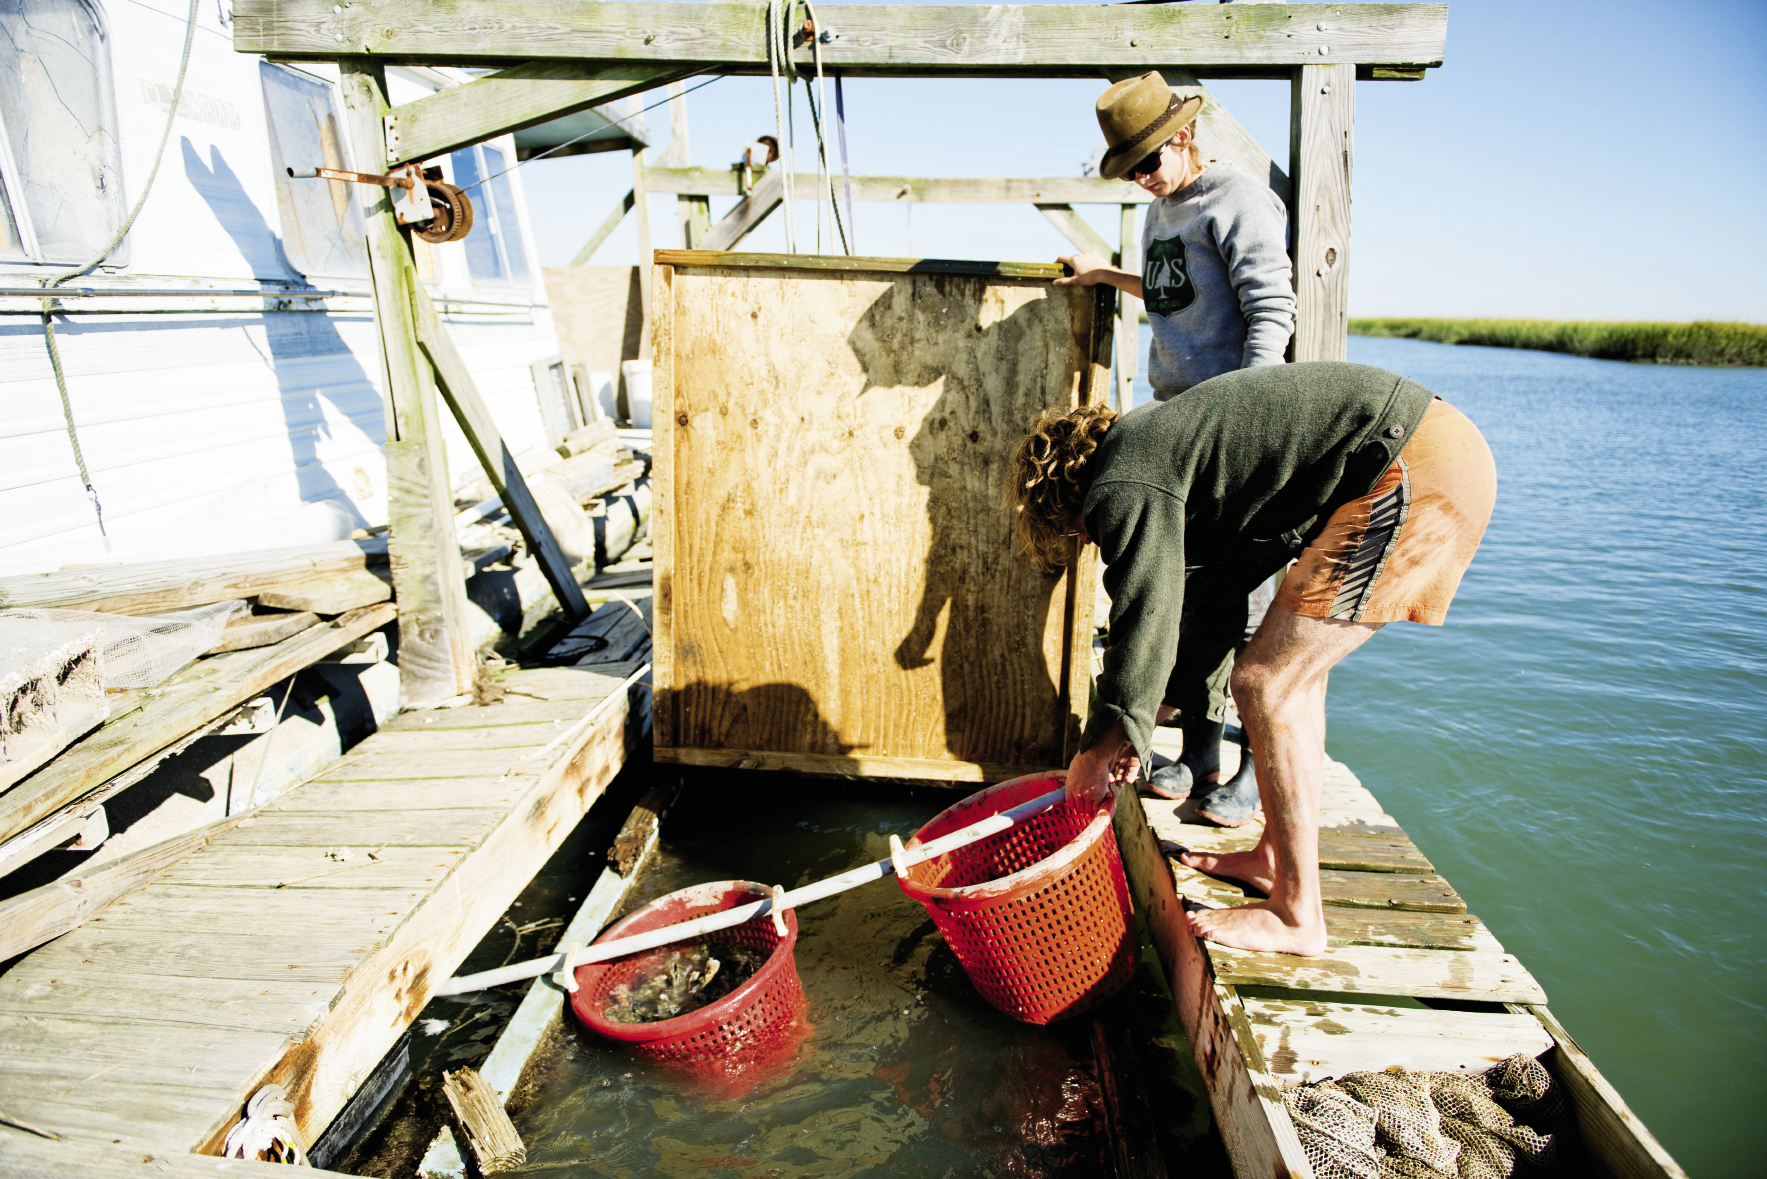 Caleb and Catherine set baskets of freshly sculpted Caper's Bay oyster singles into the water, where the bivalves will continue to grow and be purged of all grit and impurities.